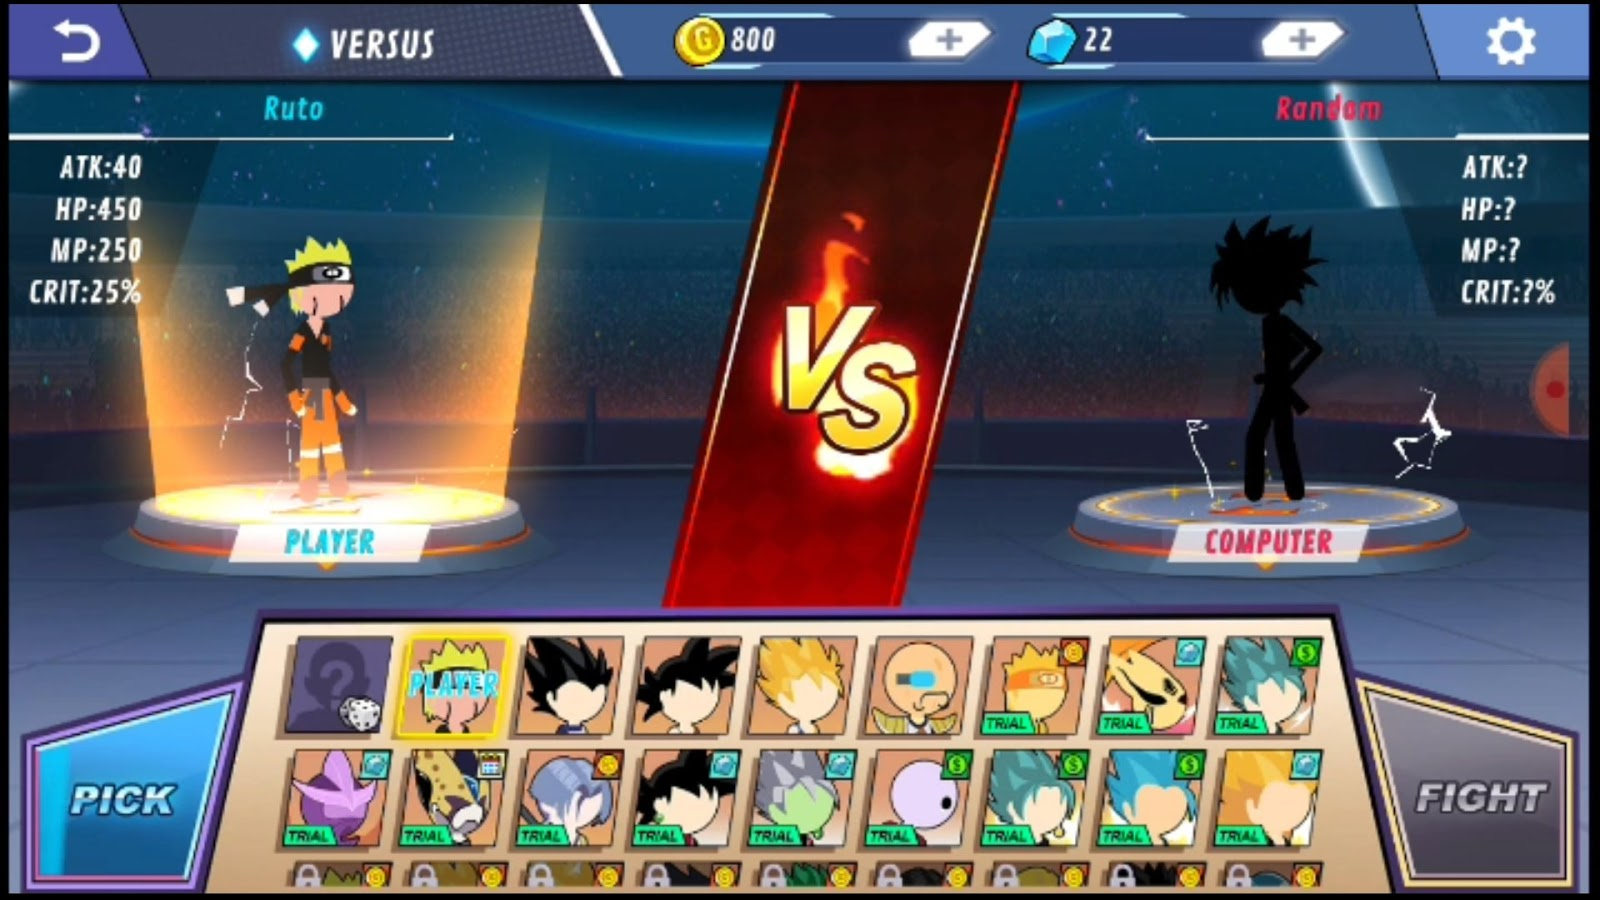 Dragon Ball stick fighters, stick hero fighters